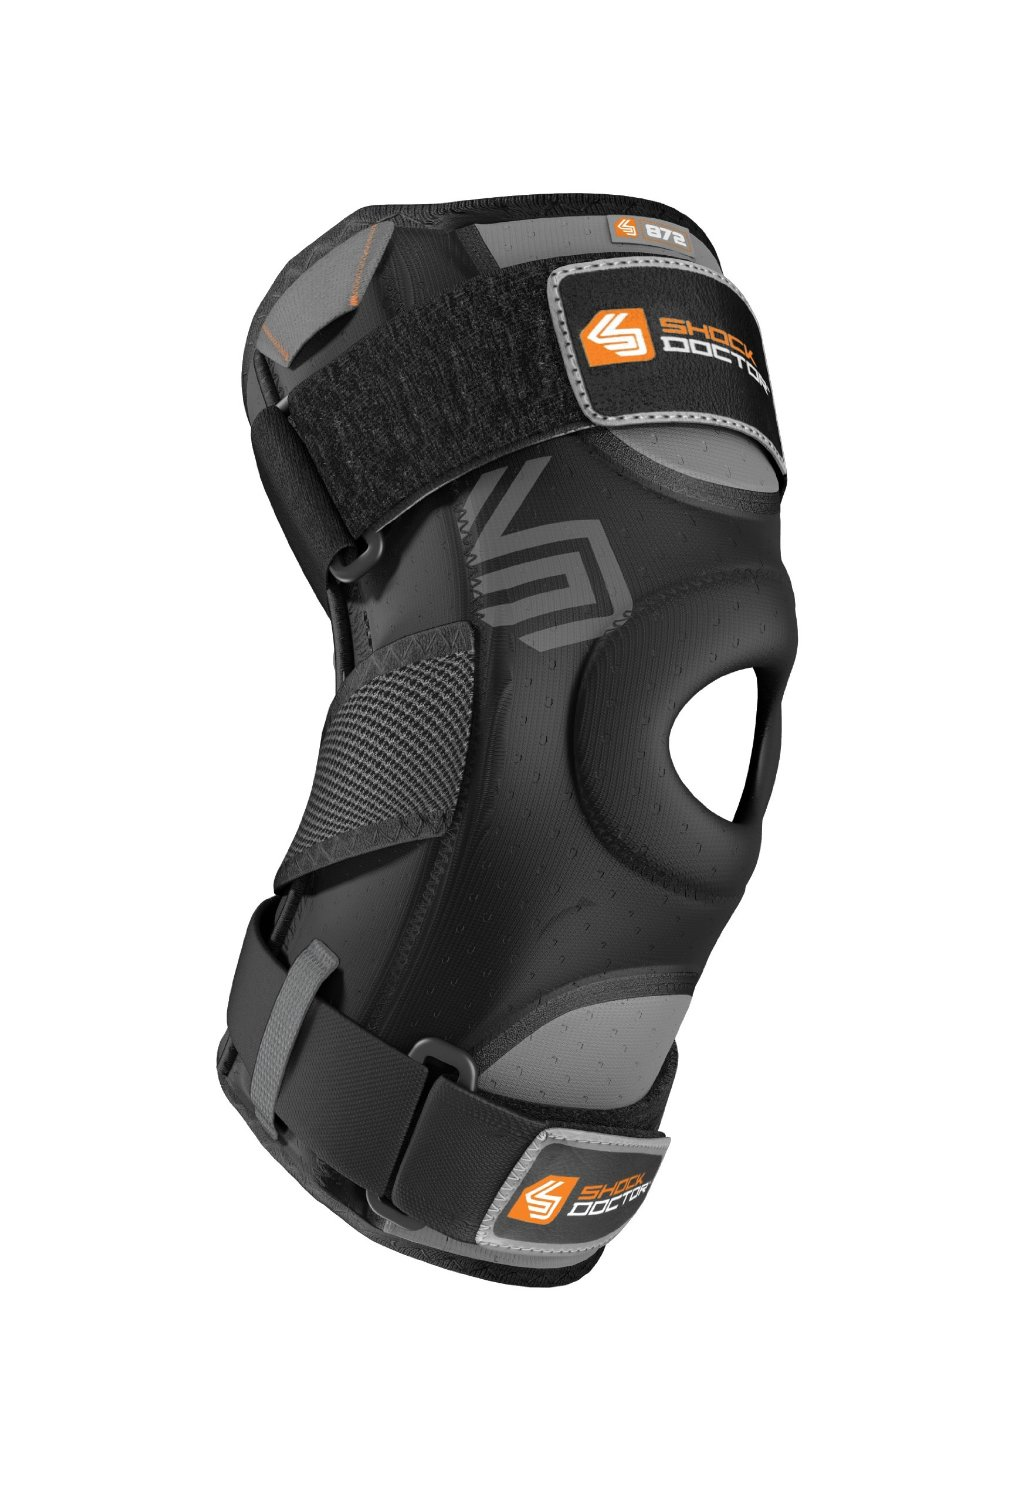 Shock Doctor Duel Best Knee Brace Reviews